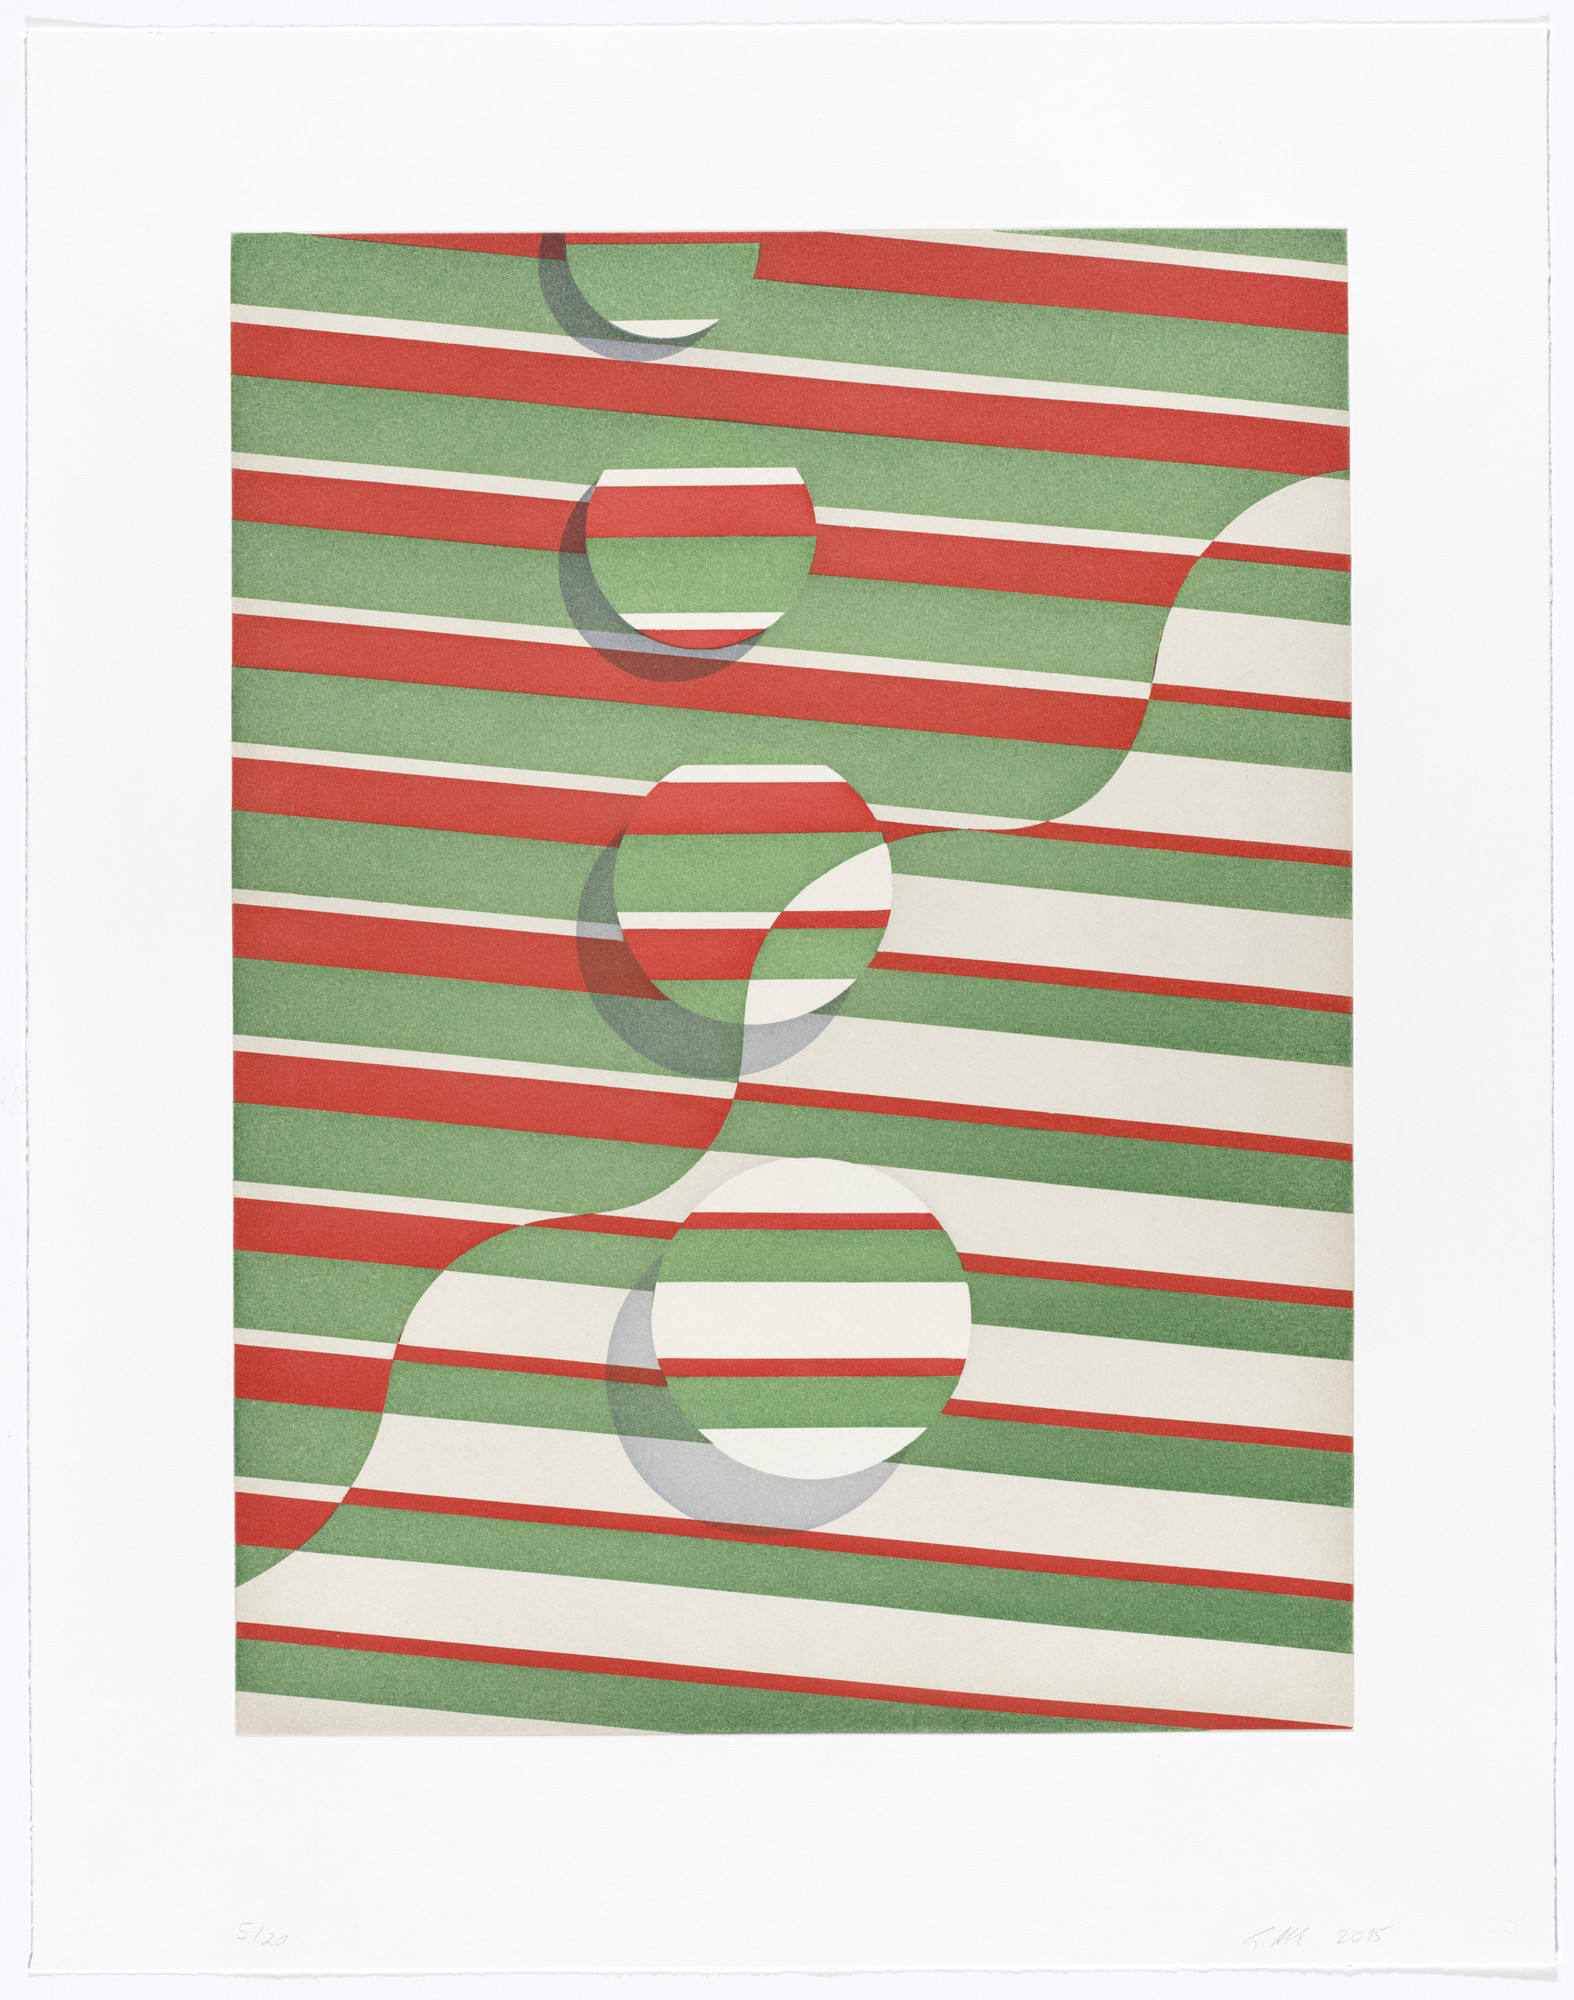 Tomma Abts. Untitled (wavy line). 2015